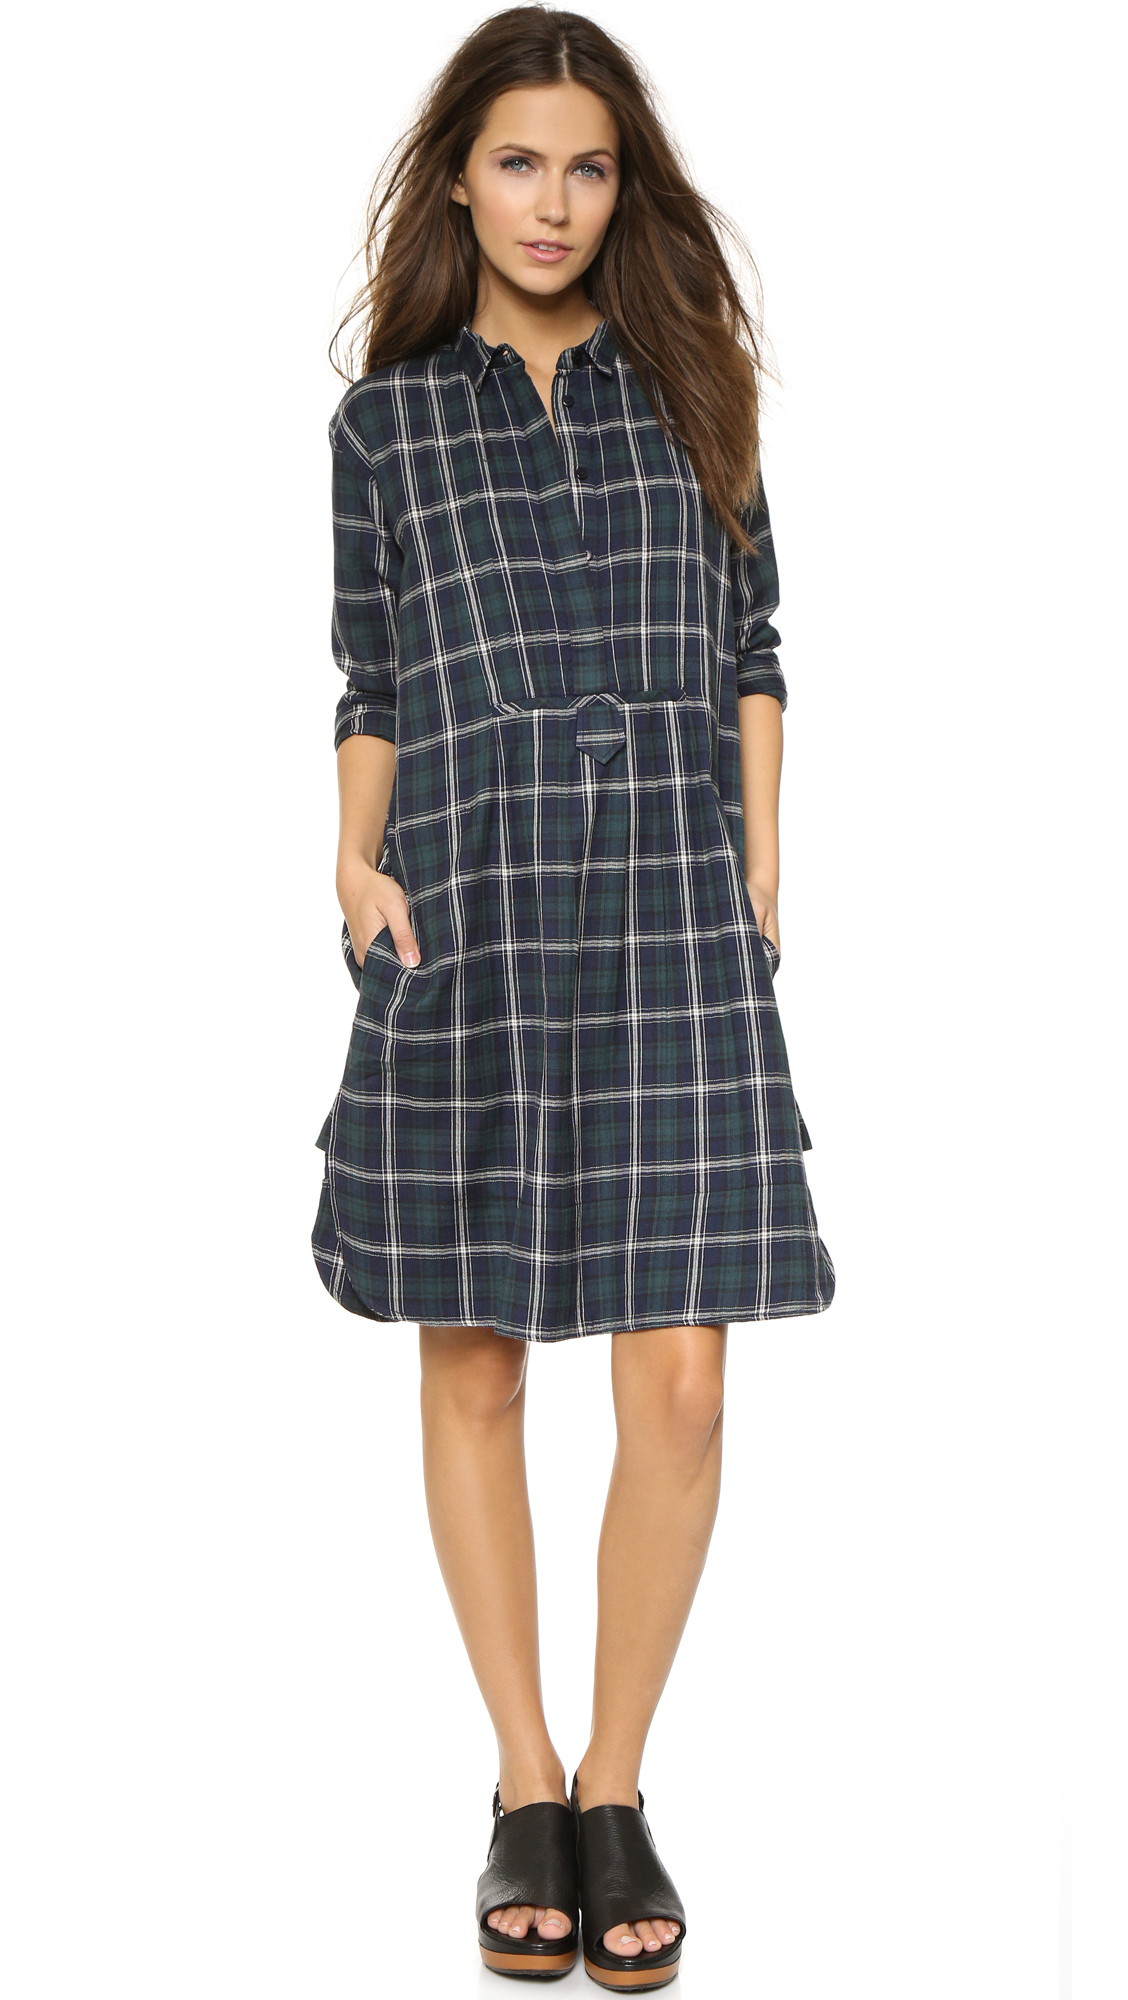 Lyst just female free shirt dress blue check in blue for Blue check dress shirt